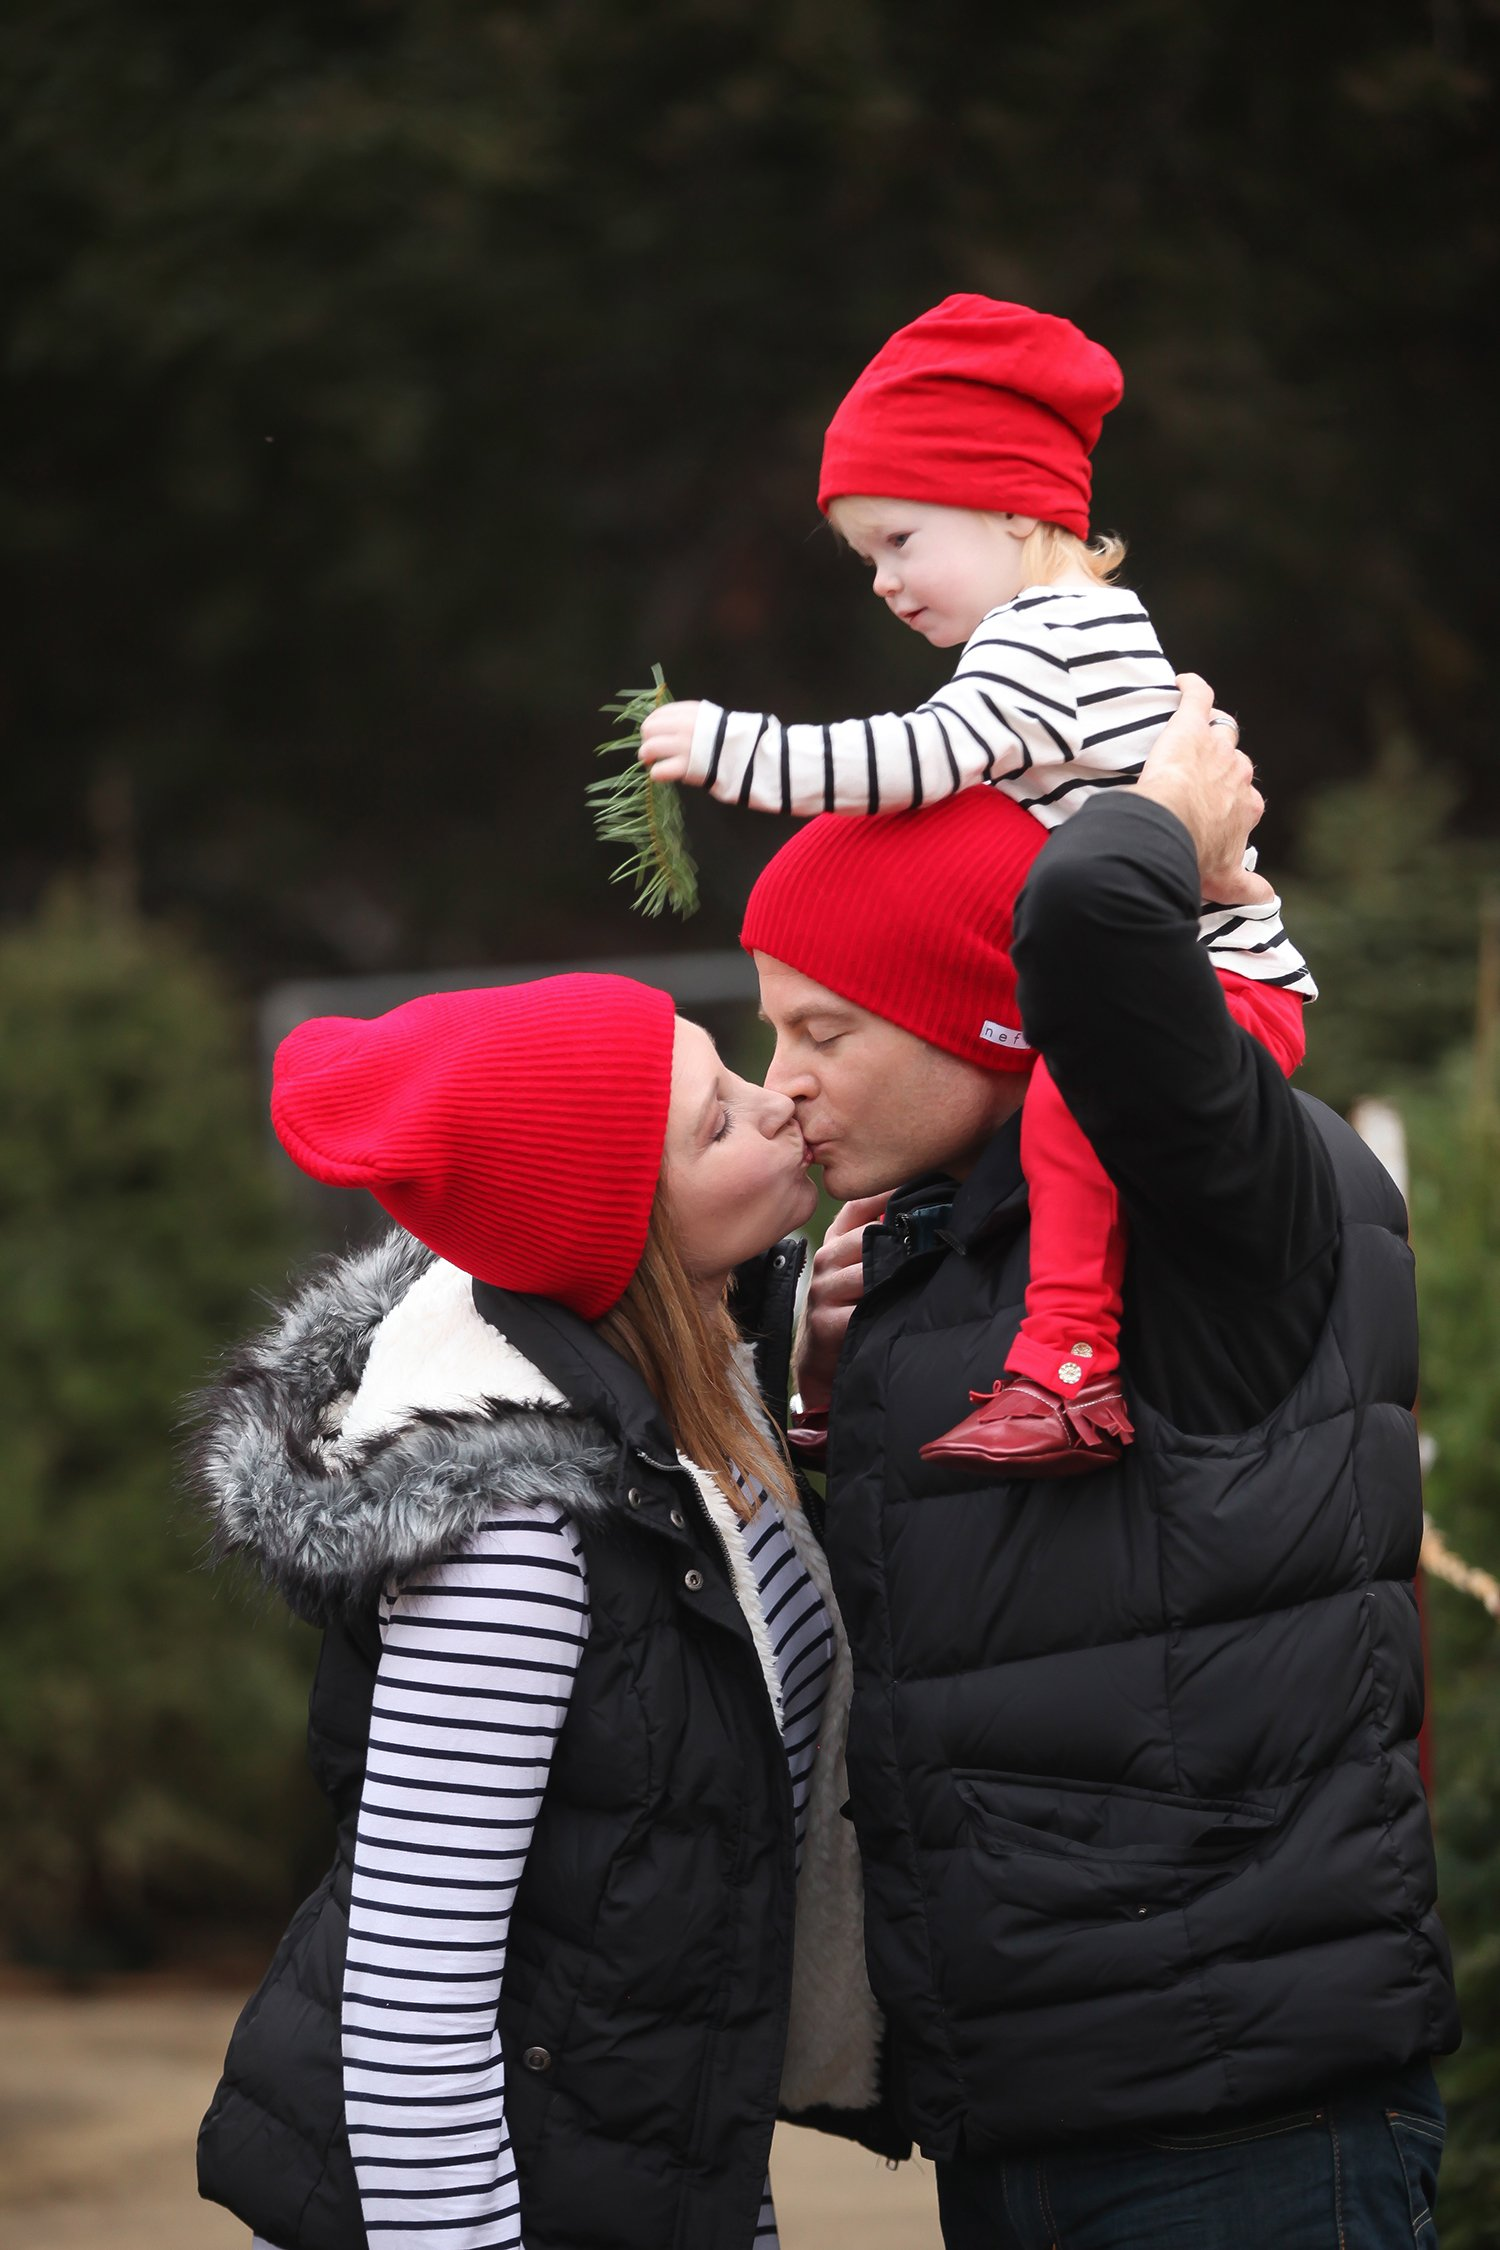 Looking for Easy Family Christmas Pictures Outfits ideas? I love the red accents in this family outfit!